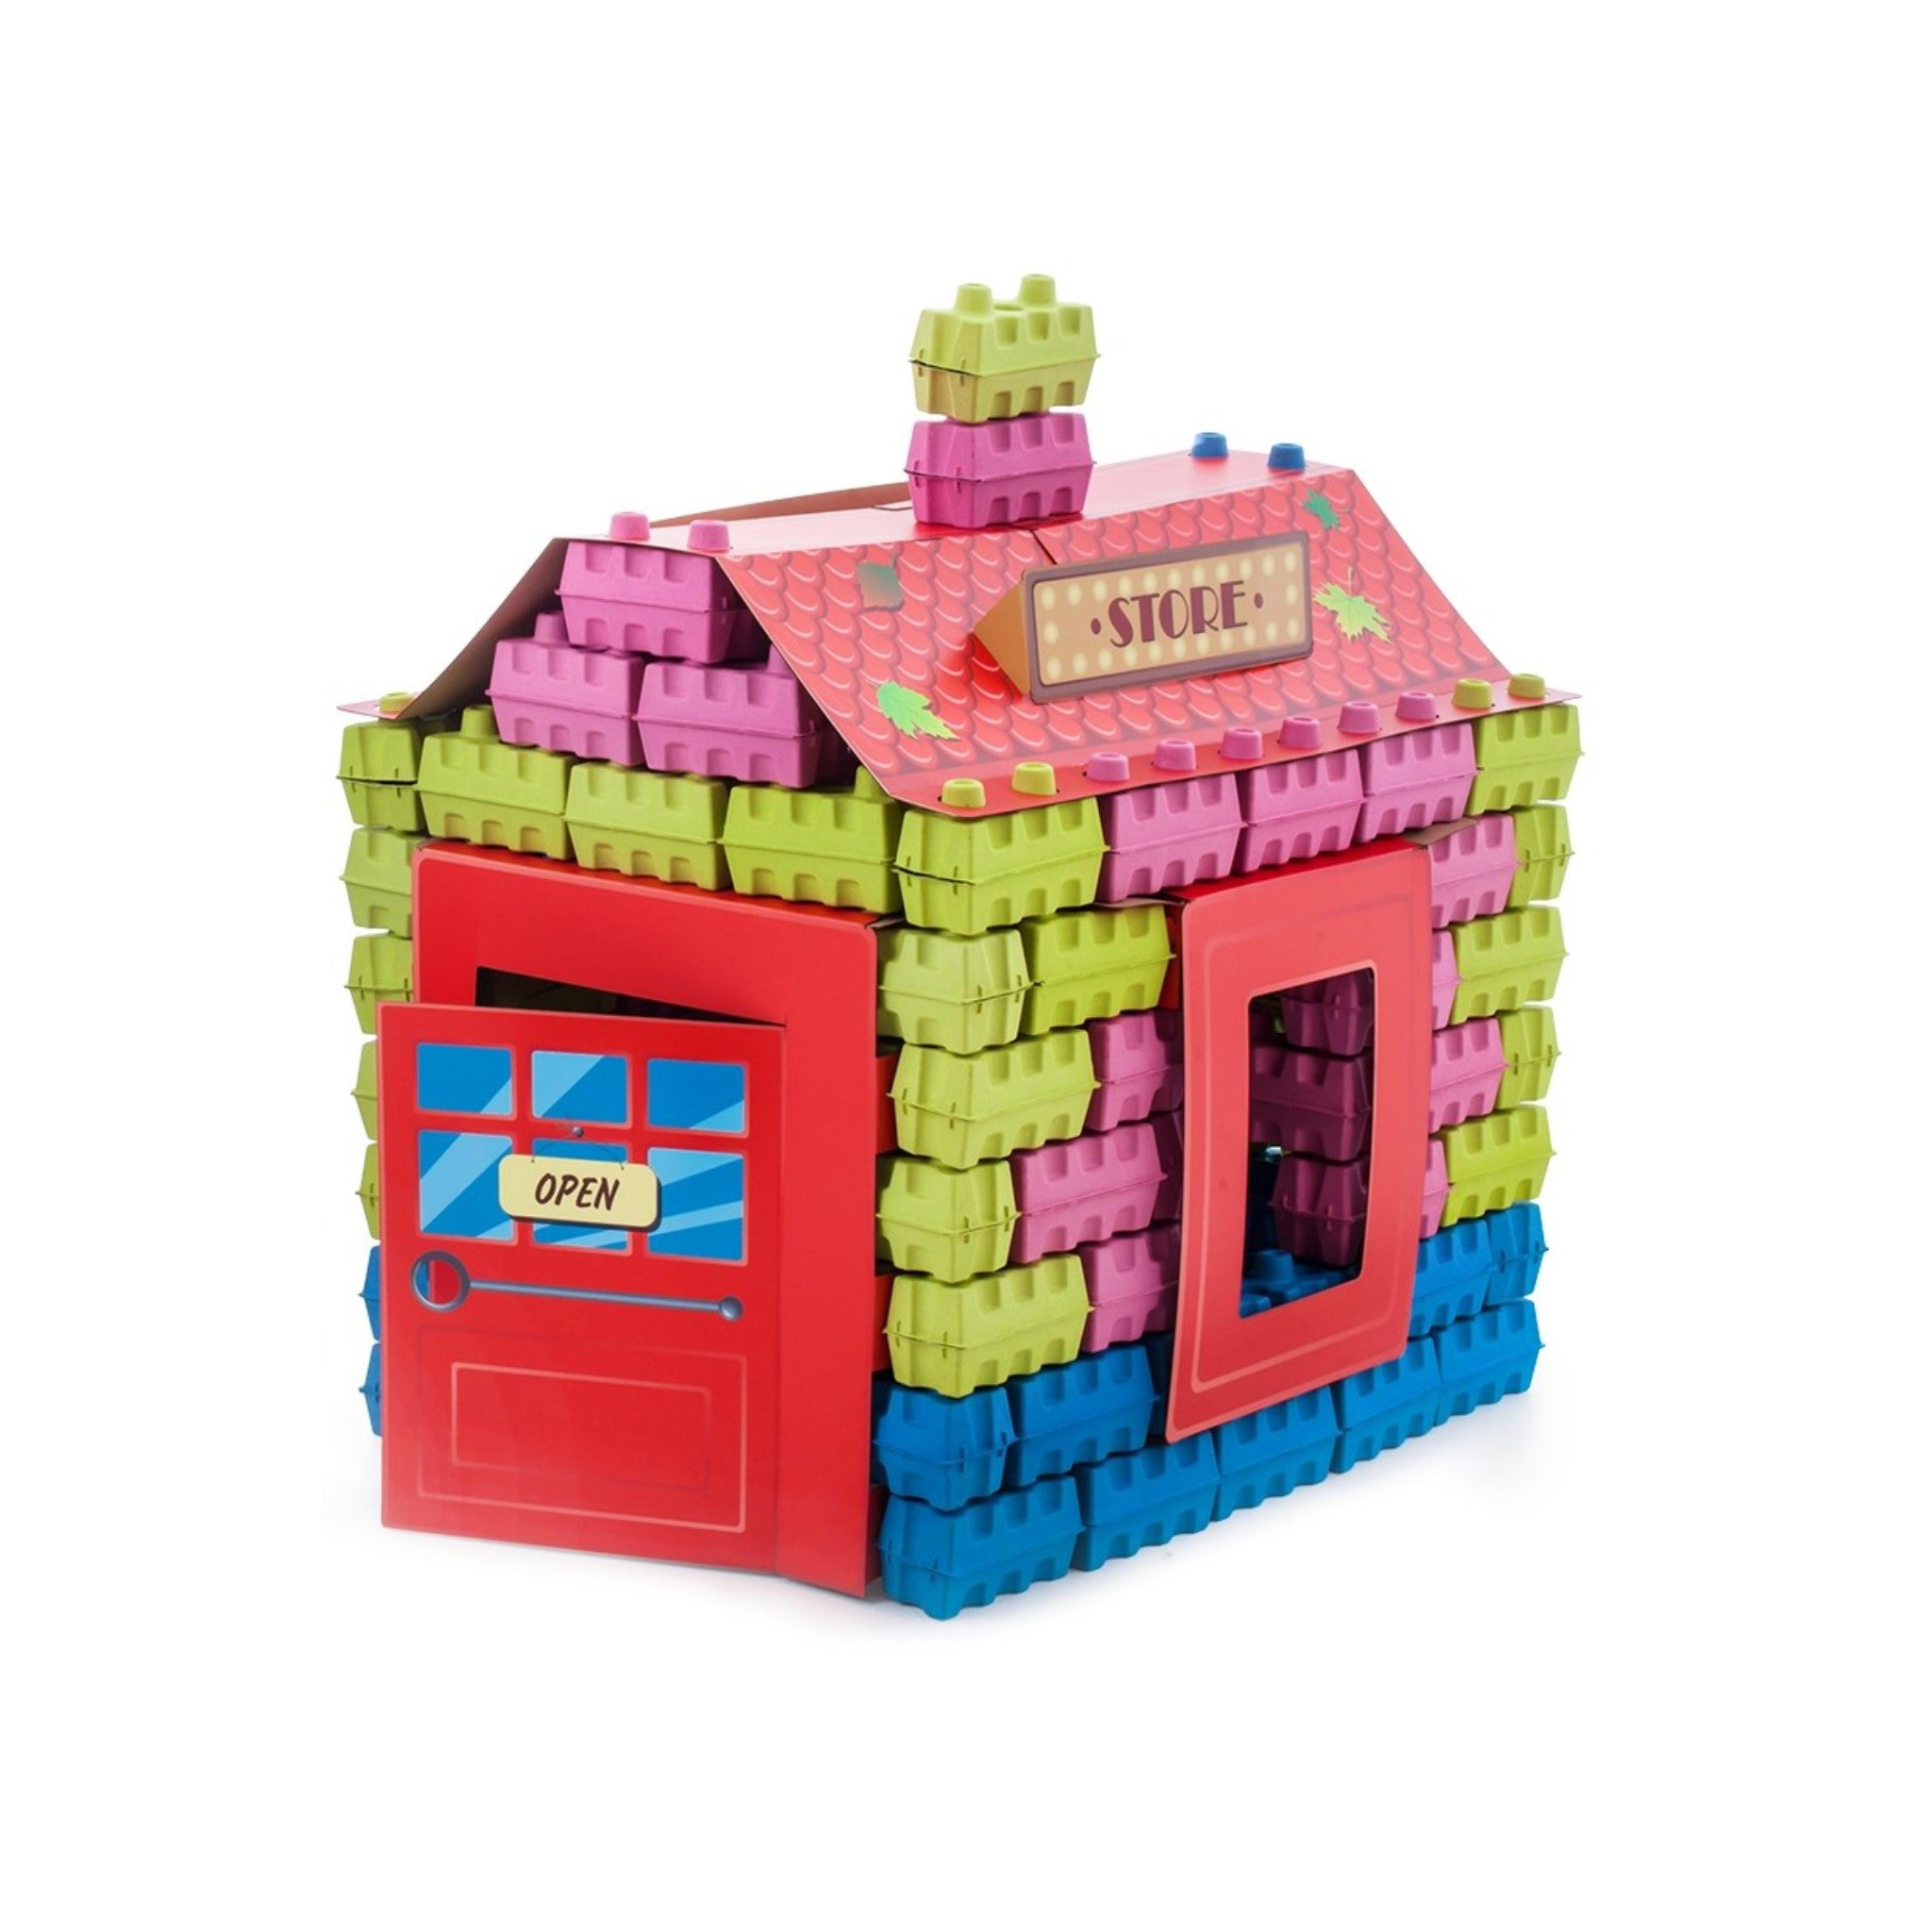 Store kit - a construction set of 111 multicolored building blocks. Educational toy kit for kids.